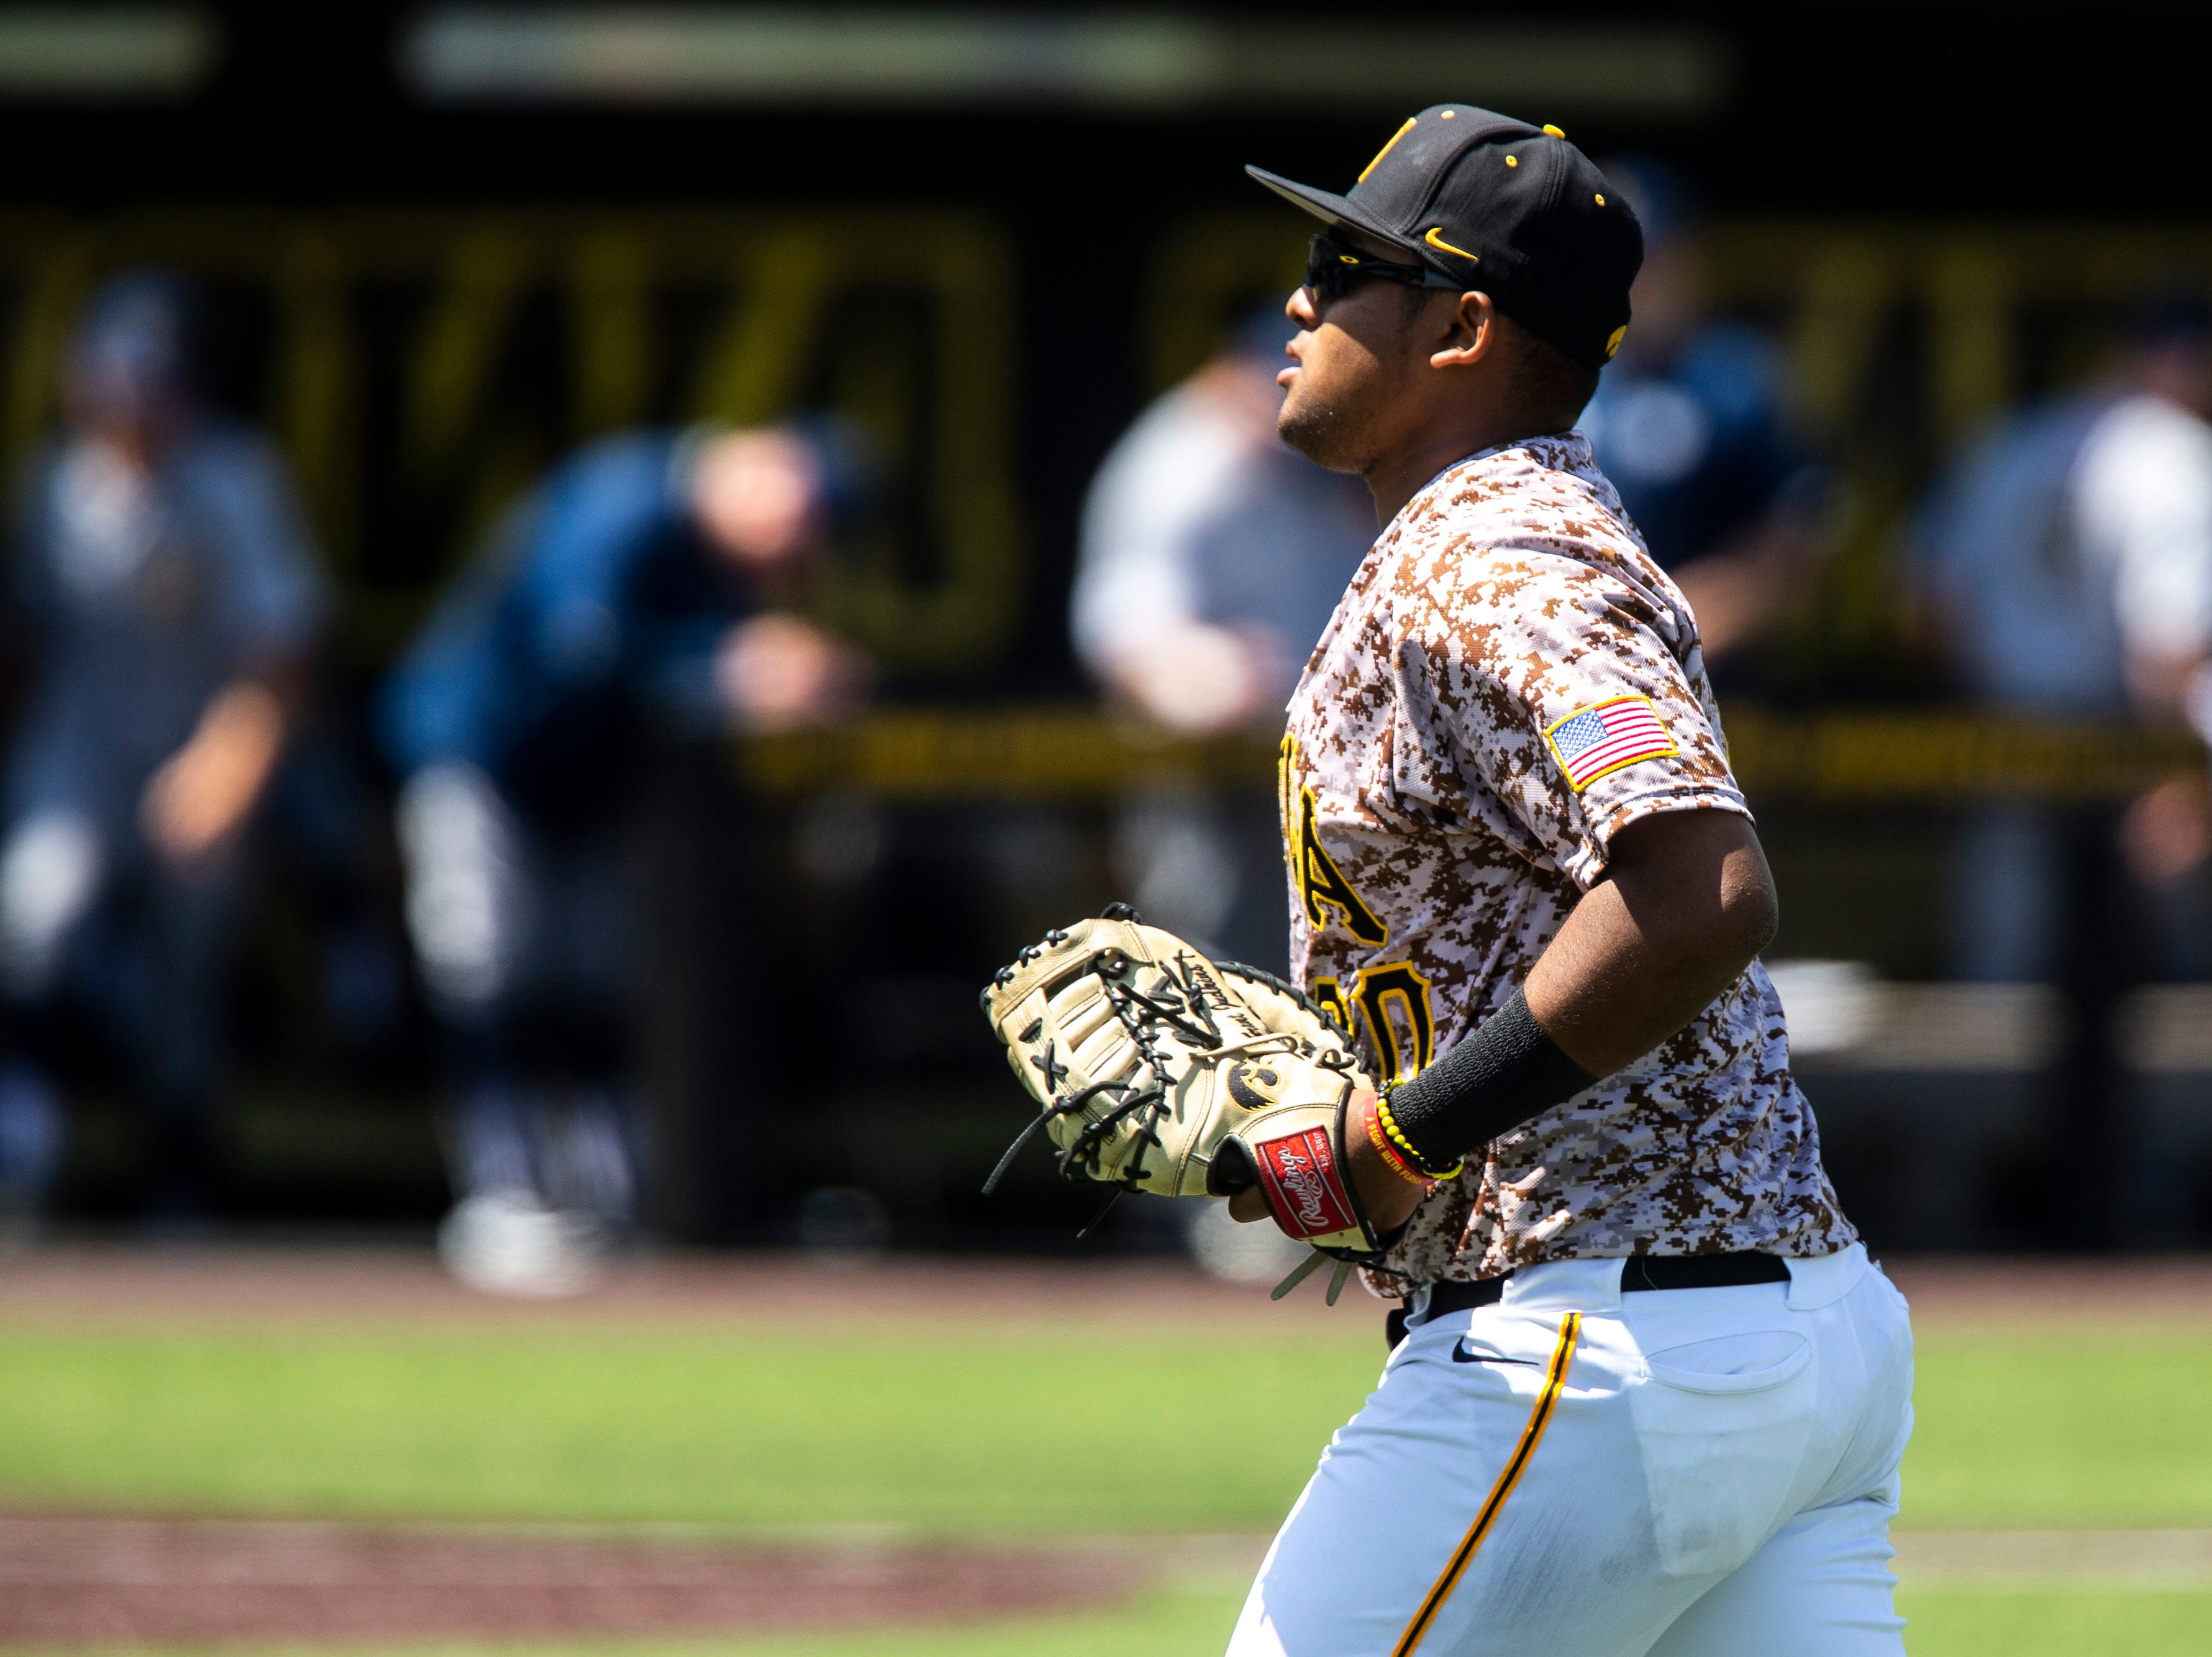 Iowa infielder Izaya Fullard (20) is pictured during a NCAA non conference baseball game, Sunday, May 5, 2019, at Duane Banks Field in Iowa City, Iowa.